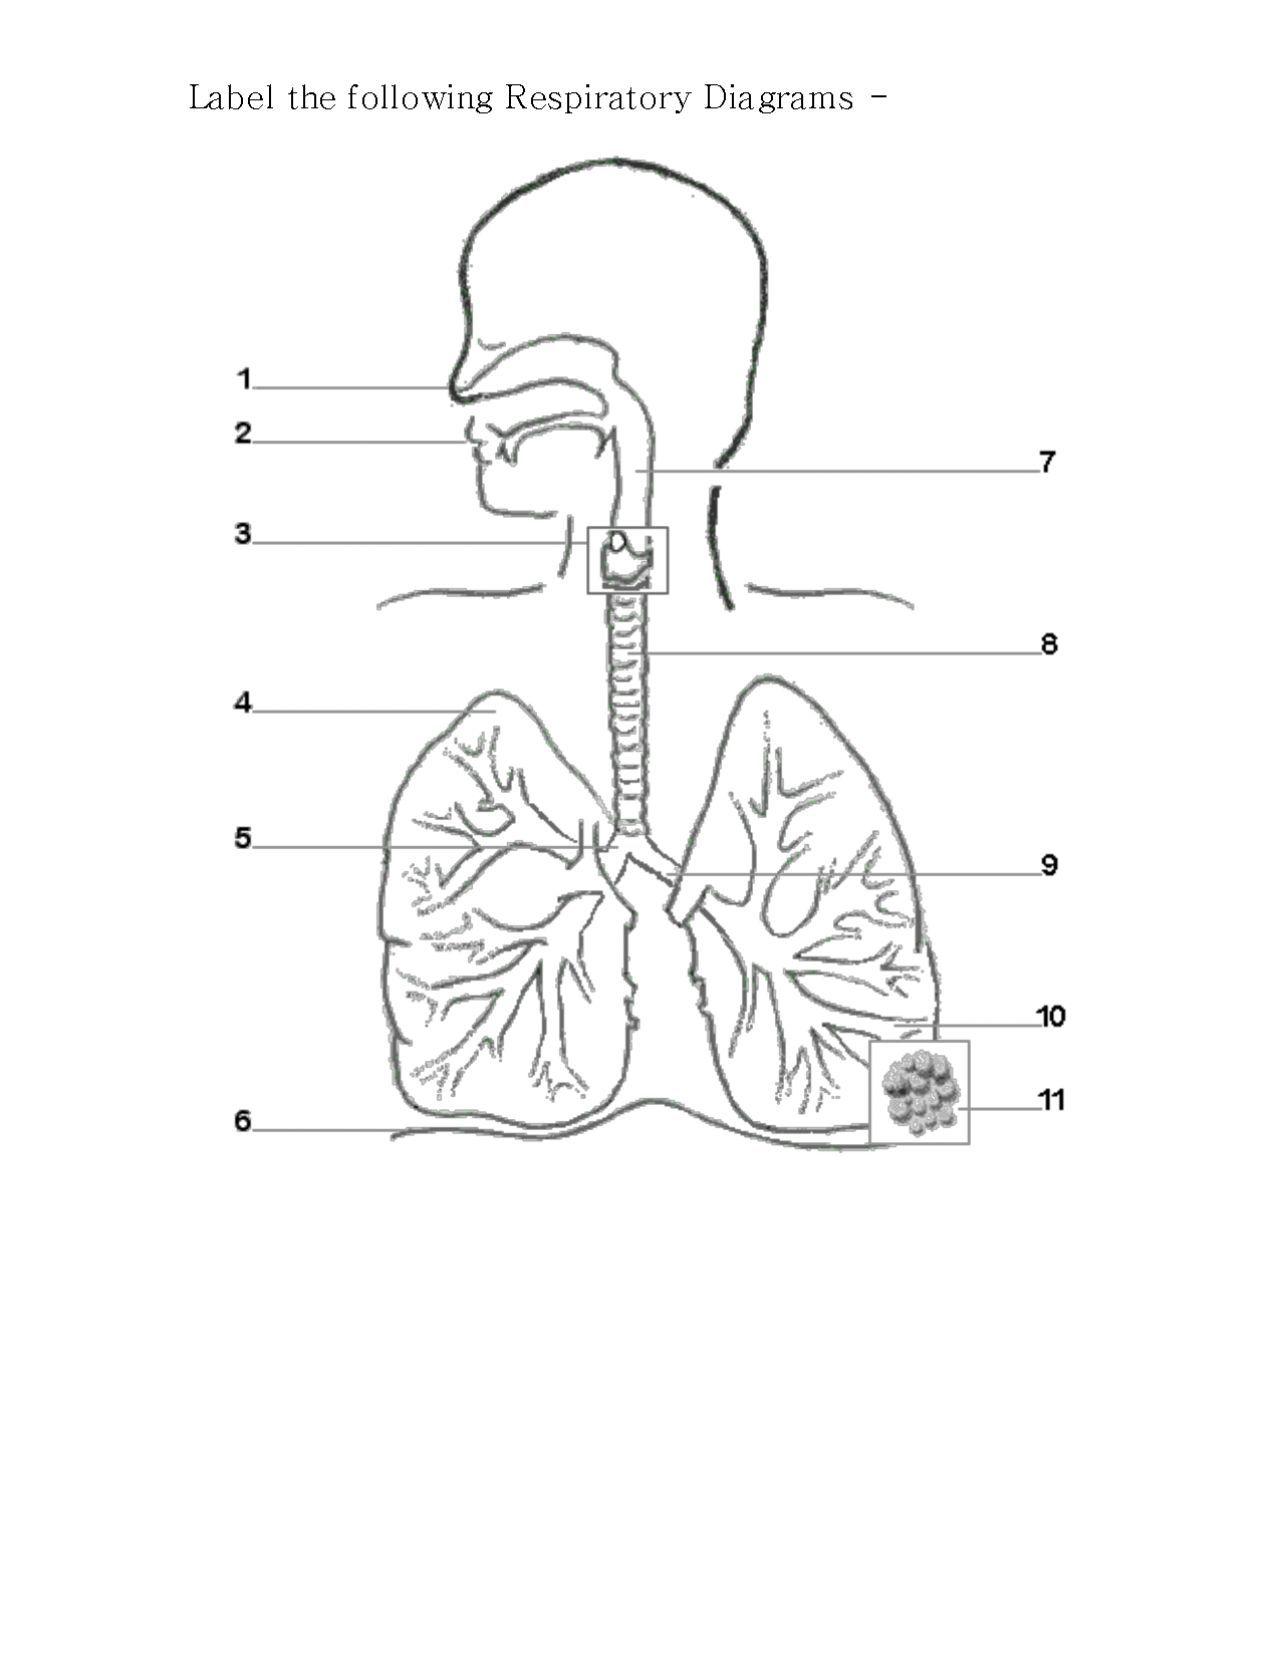 Respiratory System Diagram to Label